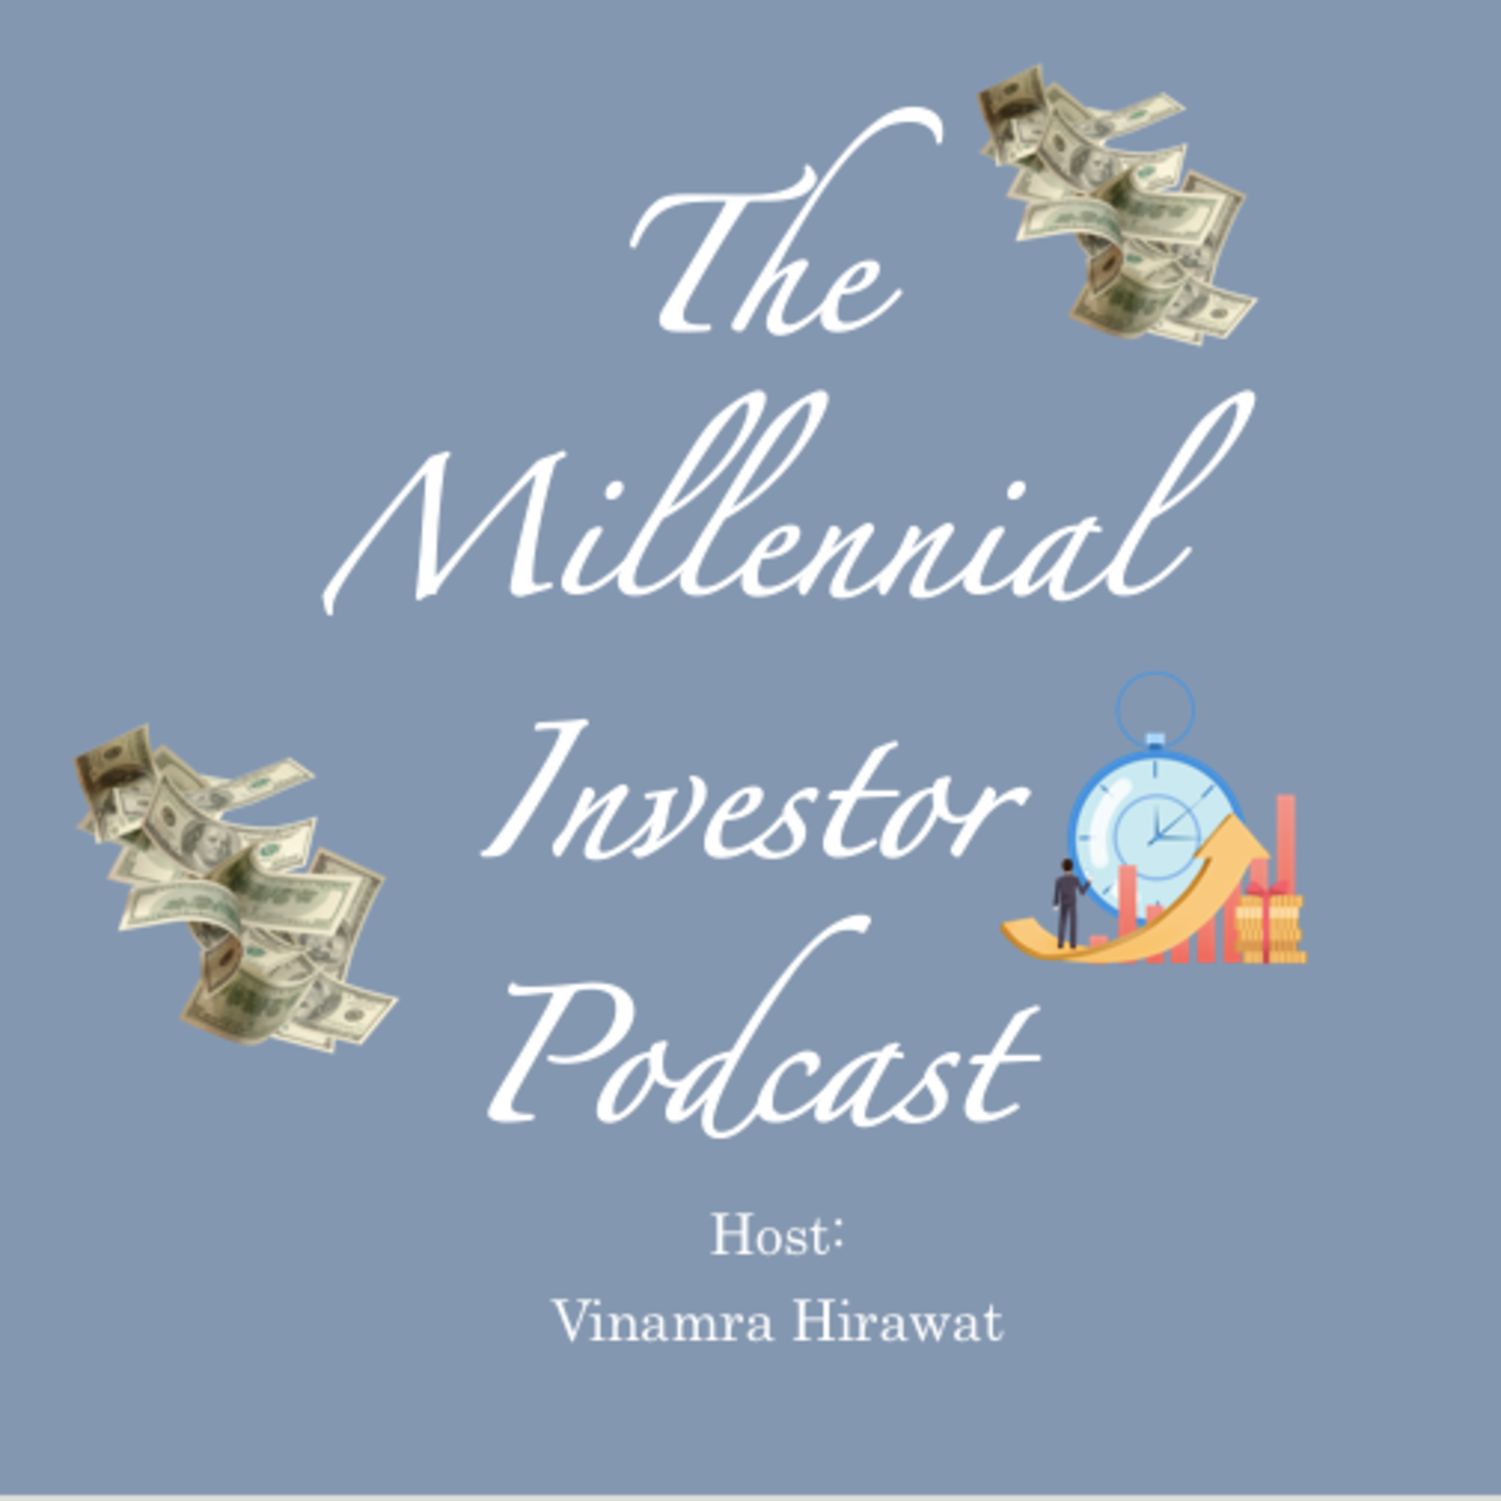 The Millennial Investor Podcast